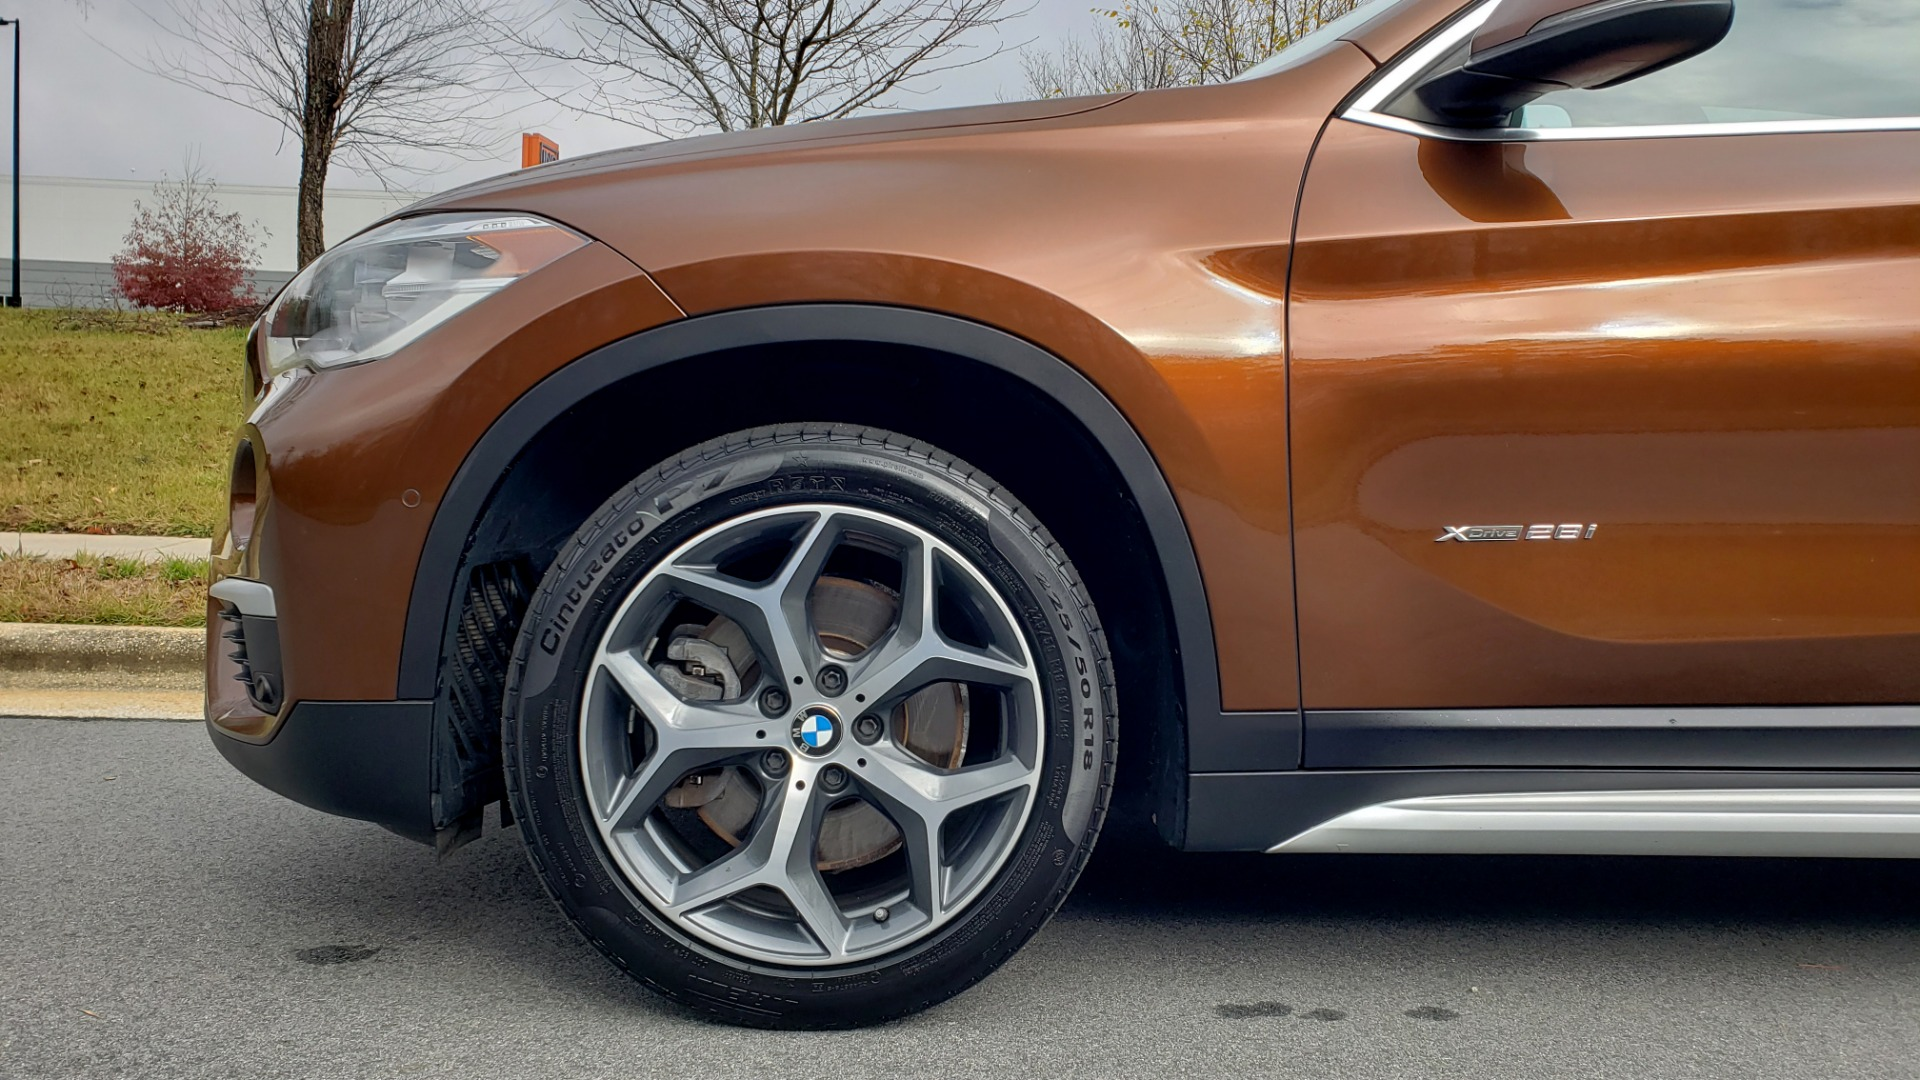 Used 2017 BMW X1 XDRIVE28I / PREM / TECH / DRVR ASST / COLD WTHR / REARVIEW for sale Sold at Formula Imports in Charlotte NC 28227 77